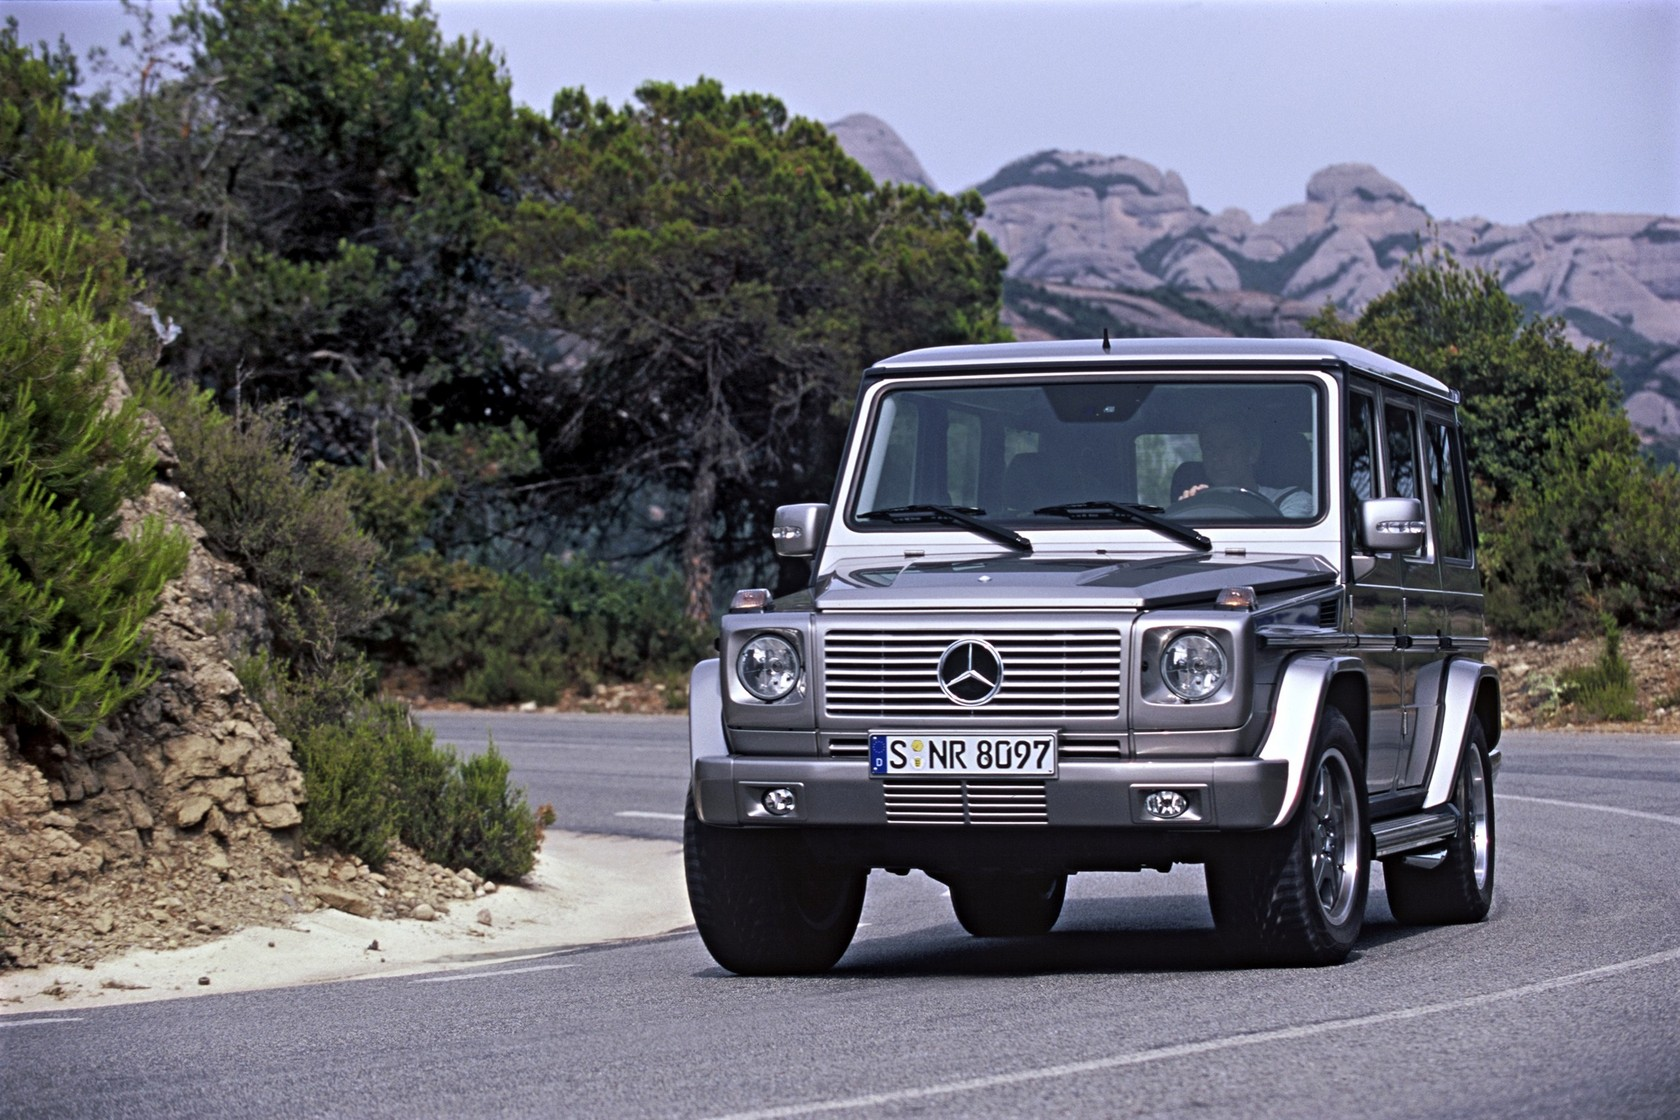 Benz Mini Suv >> Mercedes G-Klasse Auto Wallpapers GroenLicht.be